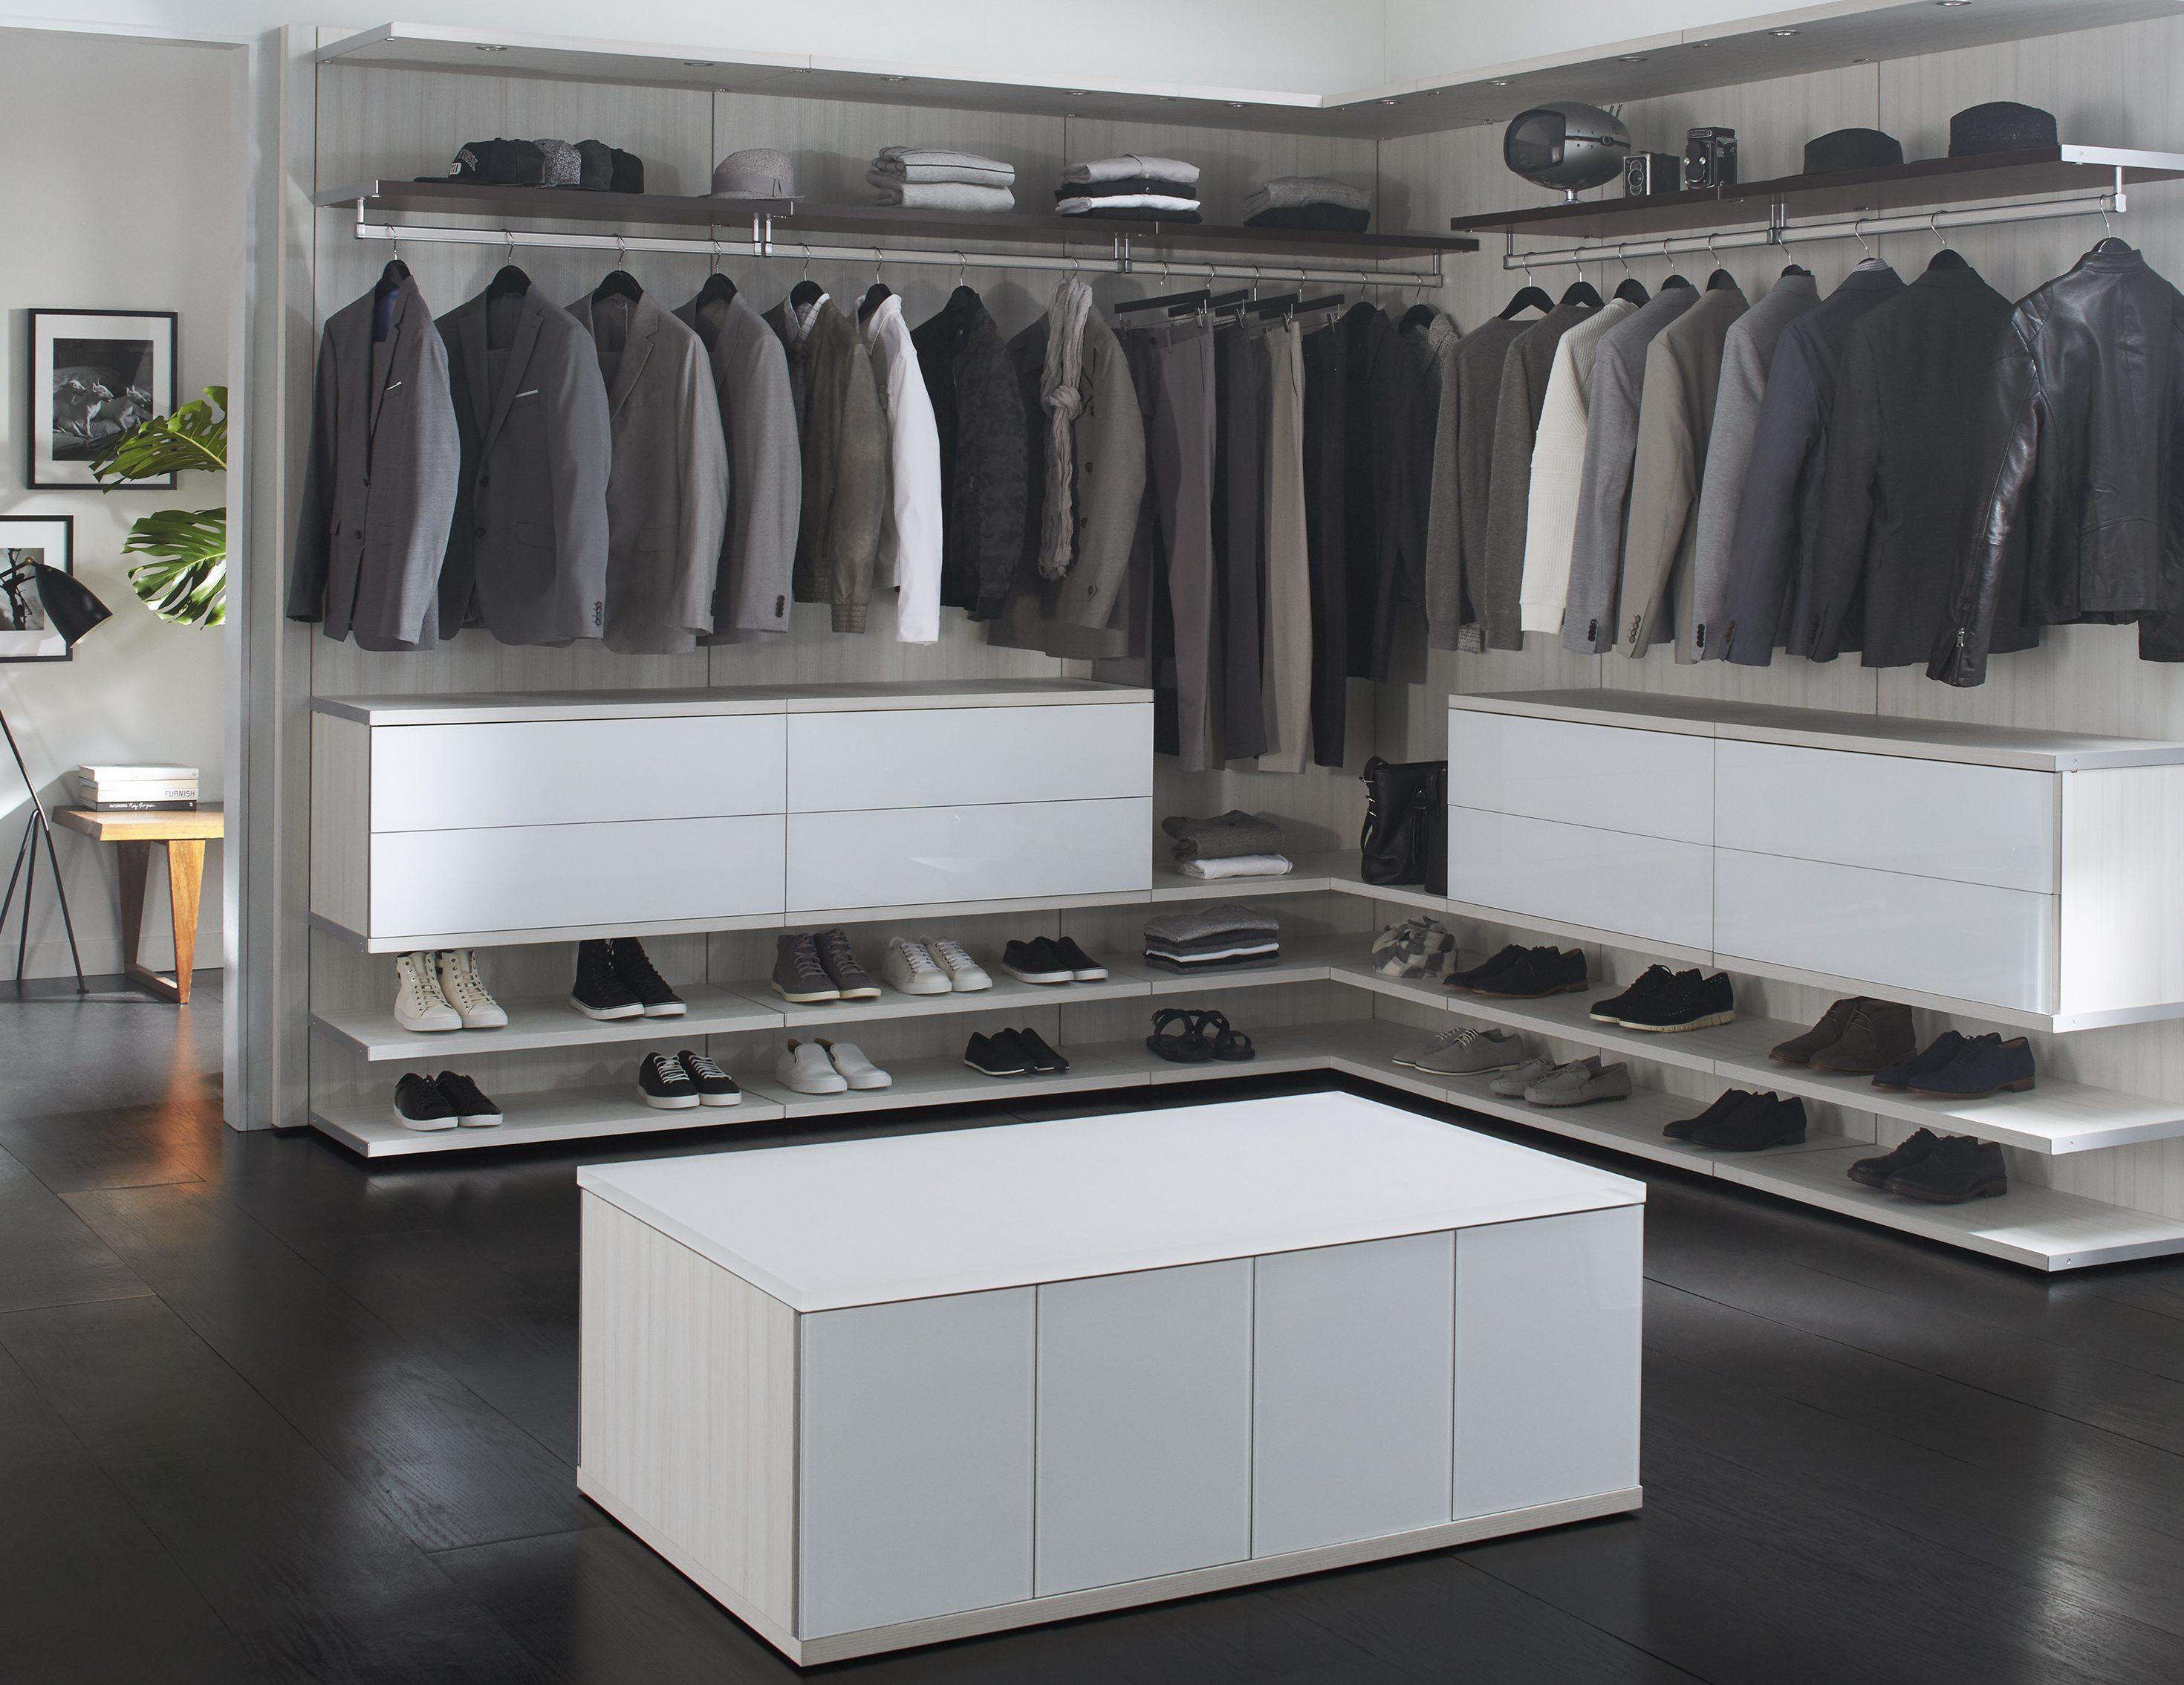 Todo en Blanco - California Closets